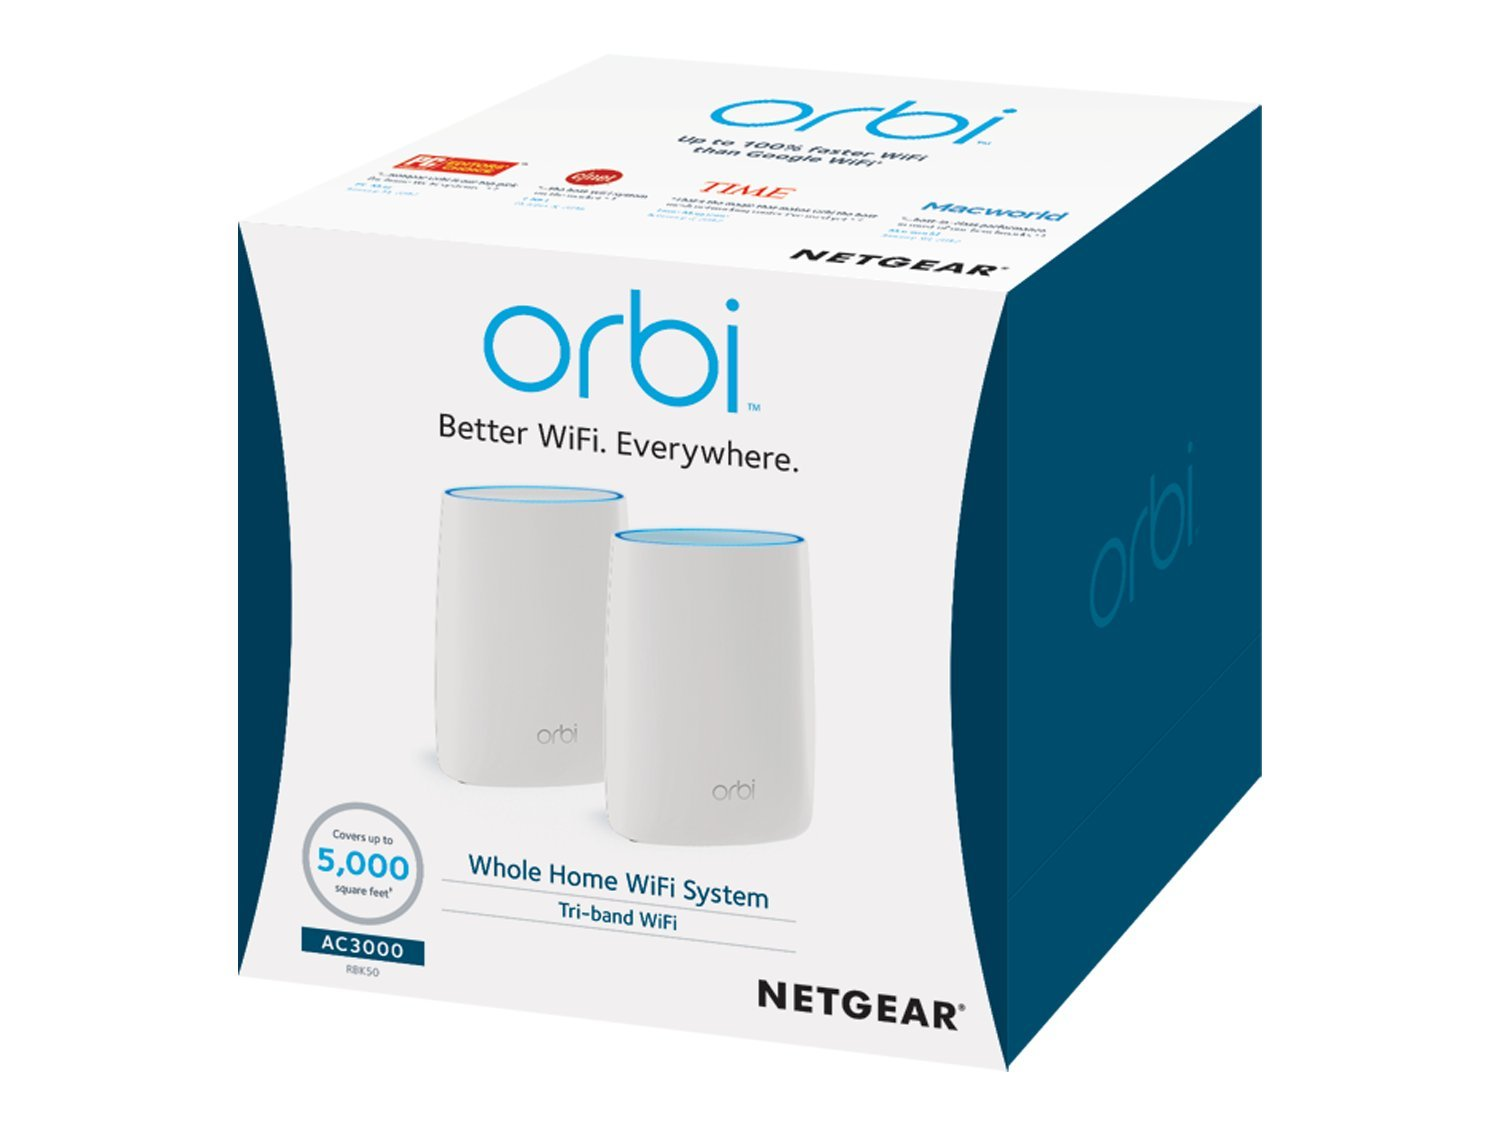 NETGEAR Orbi Whole Home Mesh WiFi System with Tri-band – Eliminate WiFi dead zones, Simple setup, Single network name, Works with Amazon Alexa, Up to 5,000 sqft, AC3000 (Set of 2) by NETGEAR (Image #7)